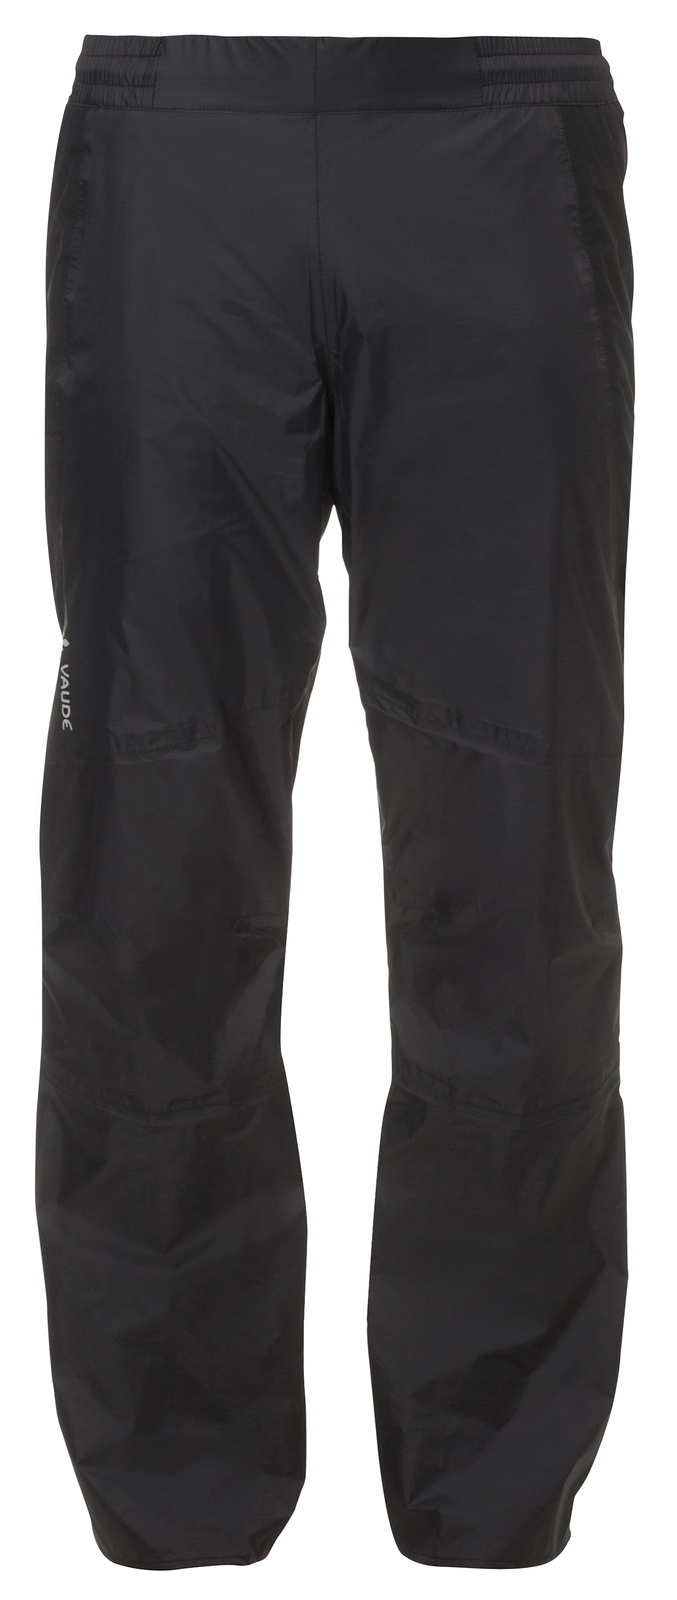 VAUDE Men´s Spray Pants III black Größe XXL-Short - schneider-sports